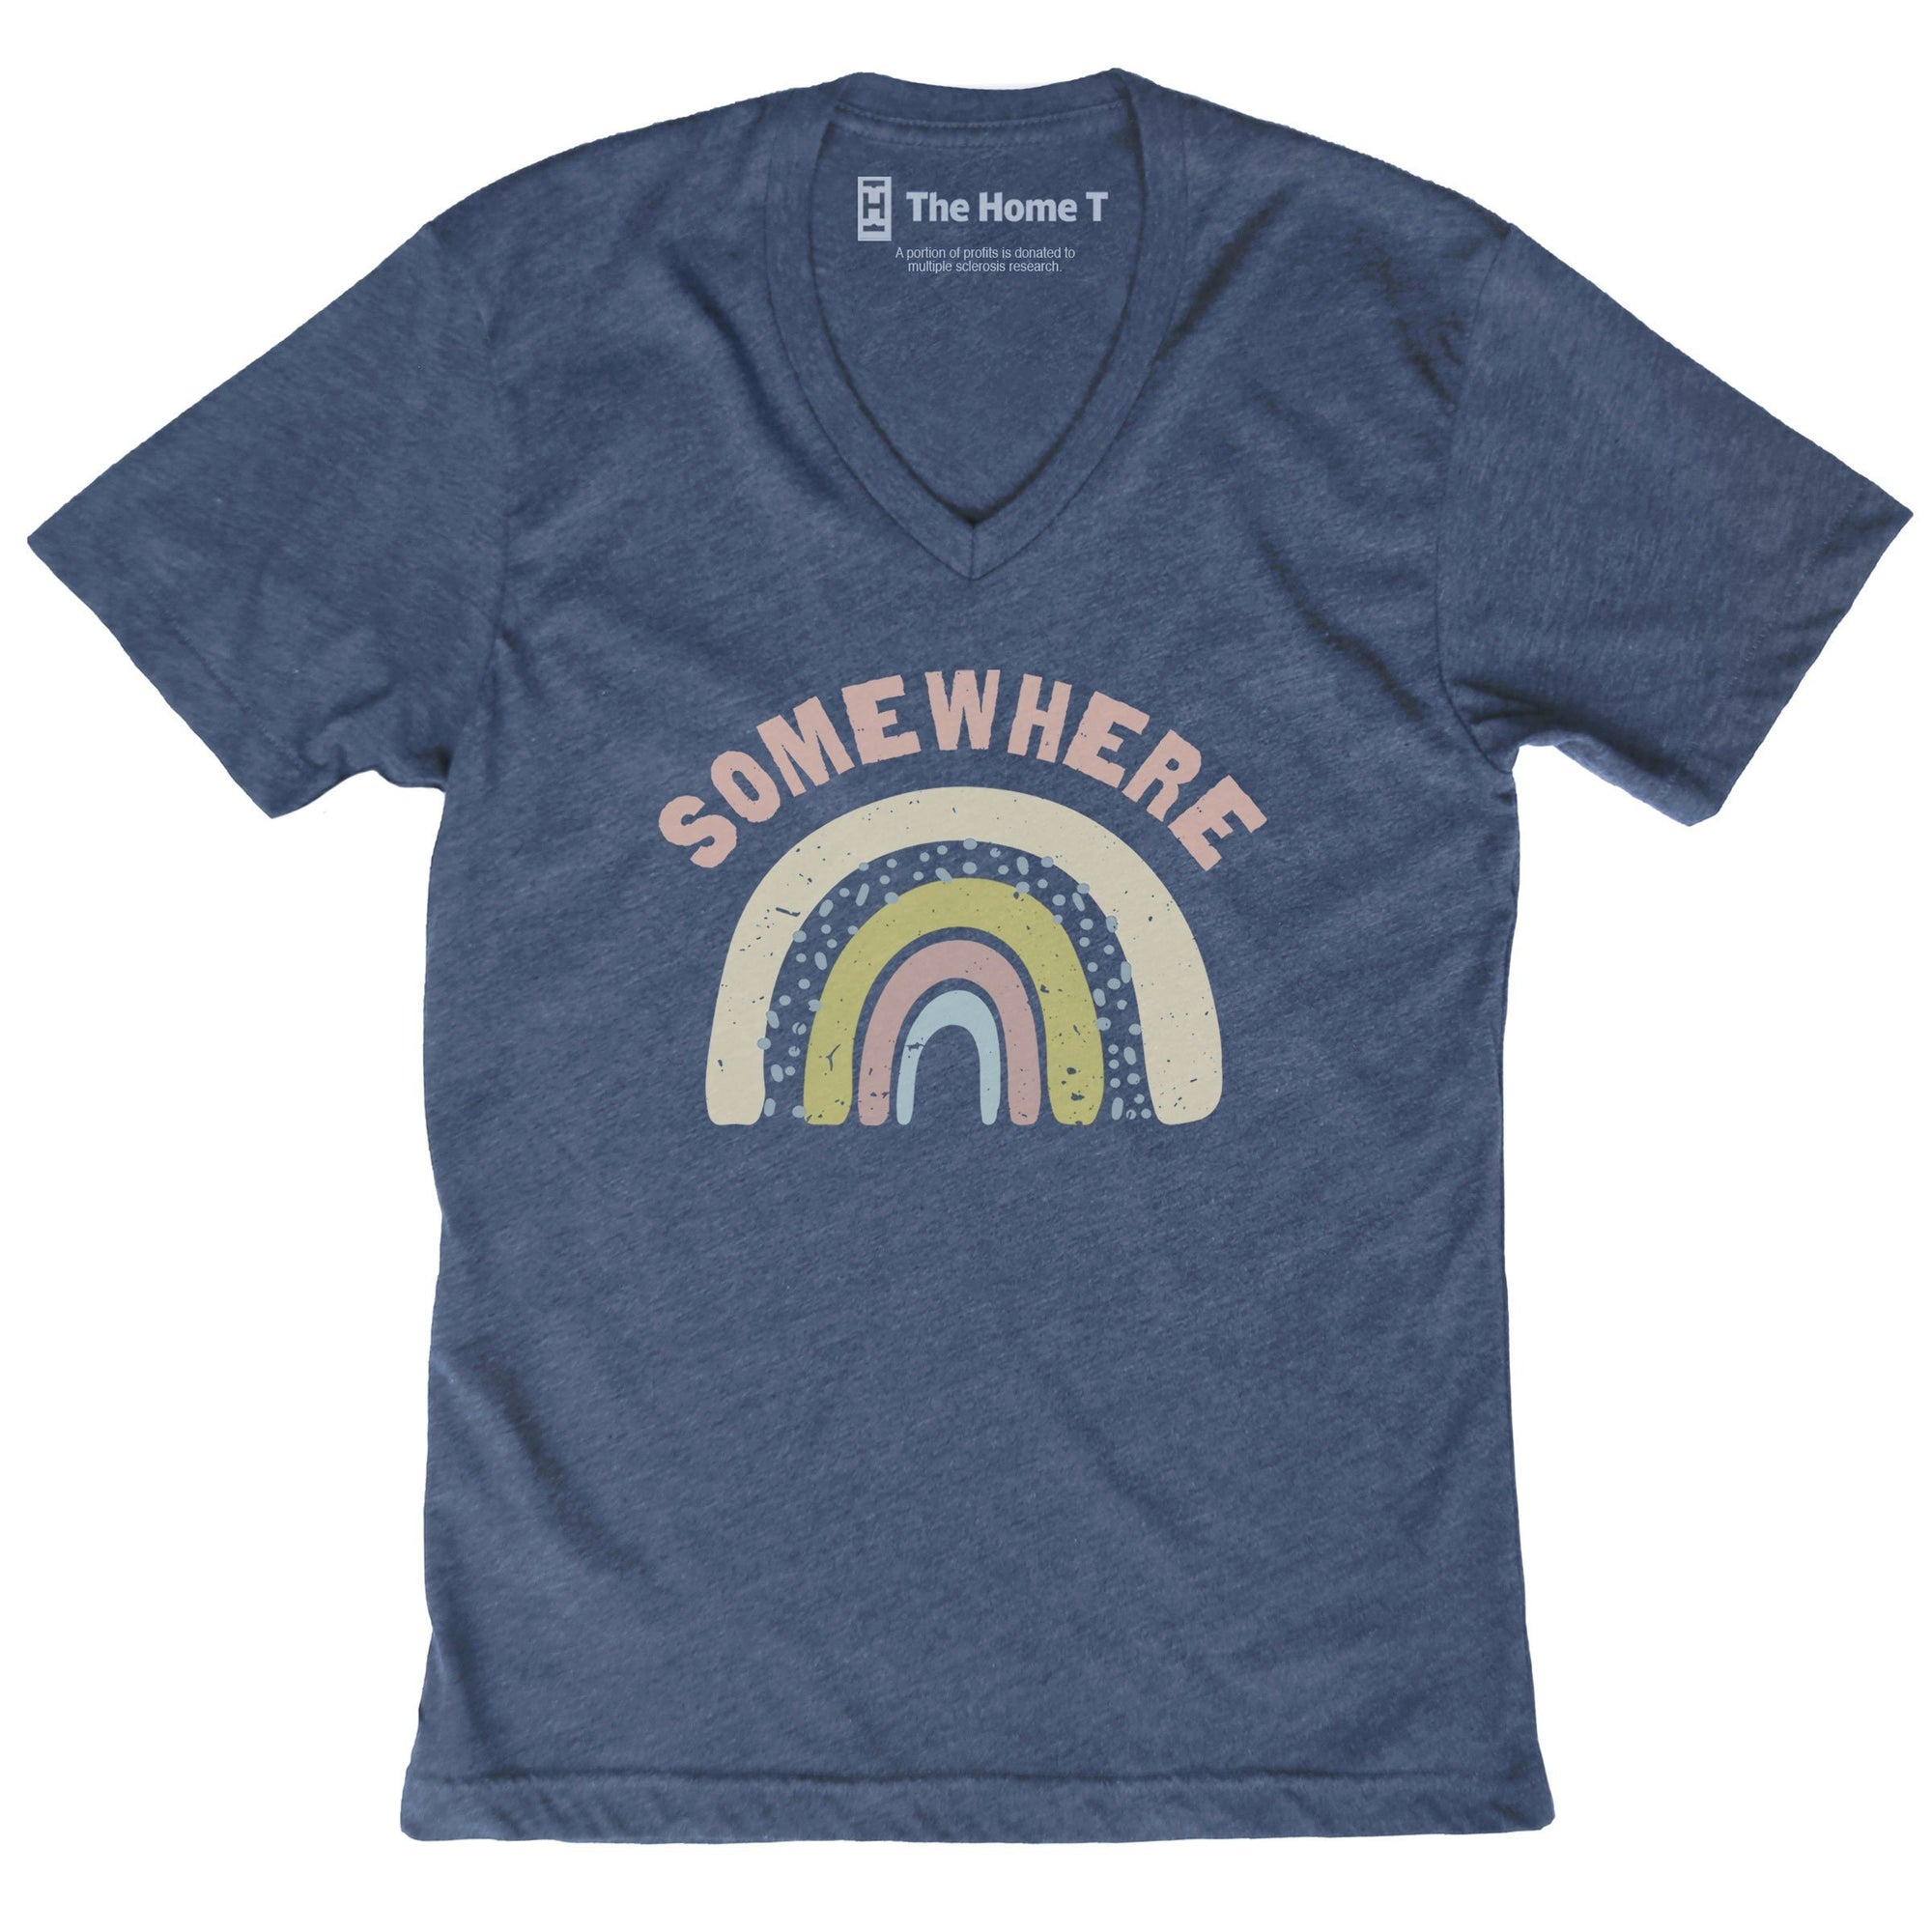 Somewhere Over the Rainbow The Home T XS Crew Neck